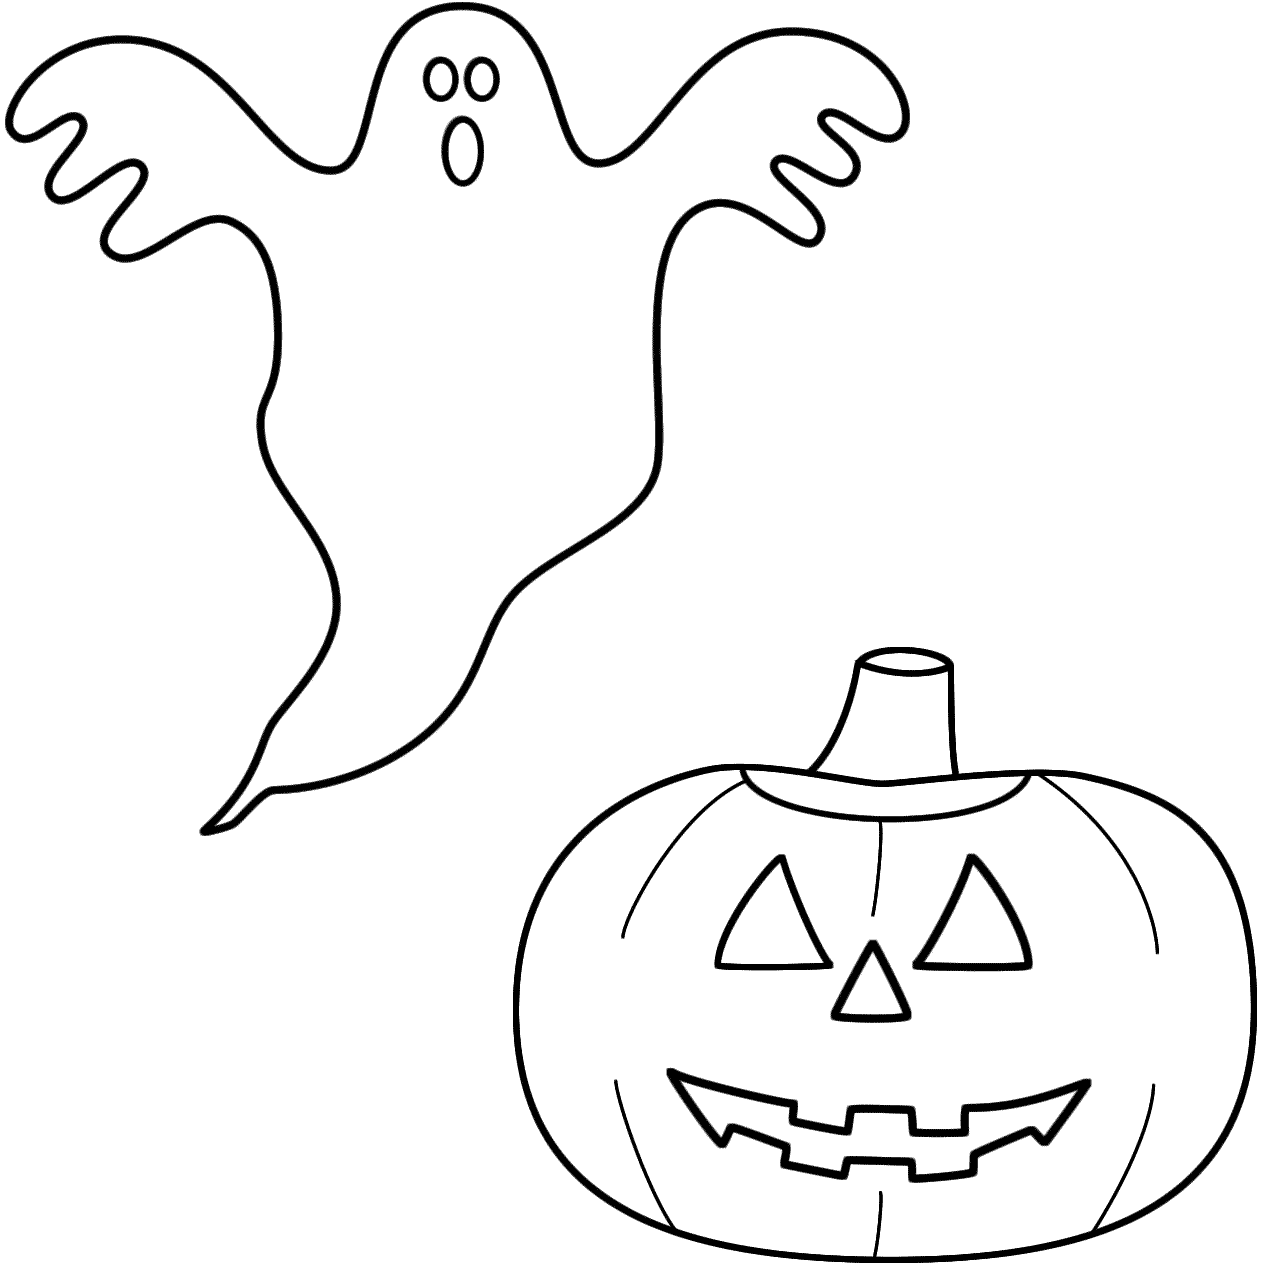 Jack O Lantern Coloring Pages Printable - Coloring Home | 1270x1270